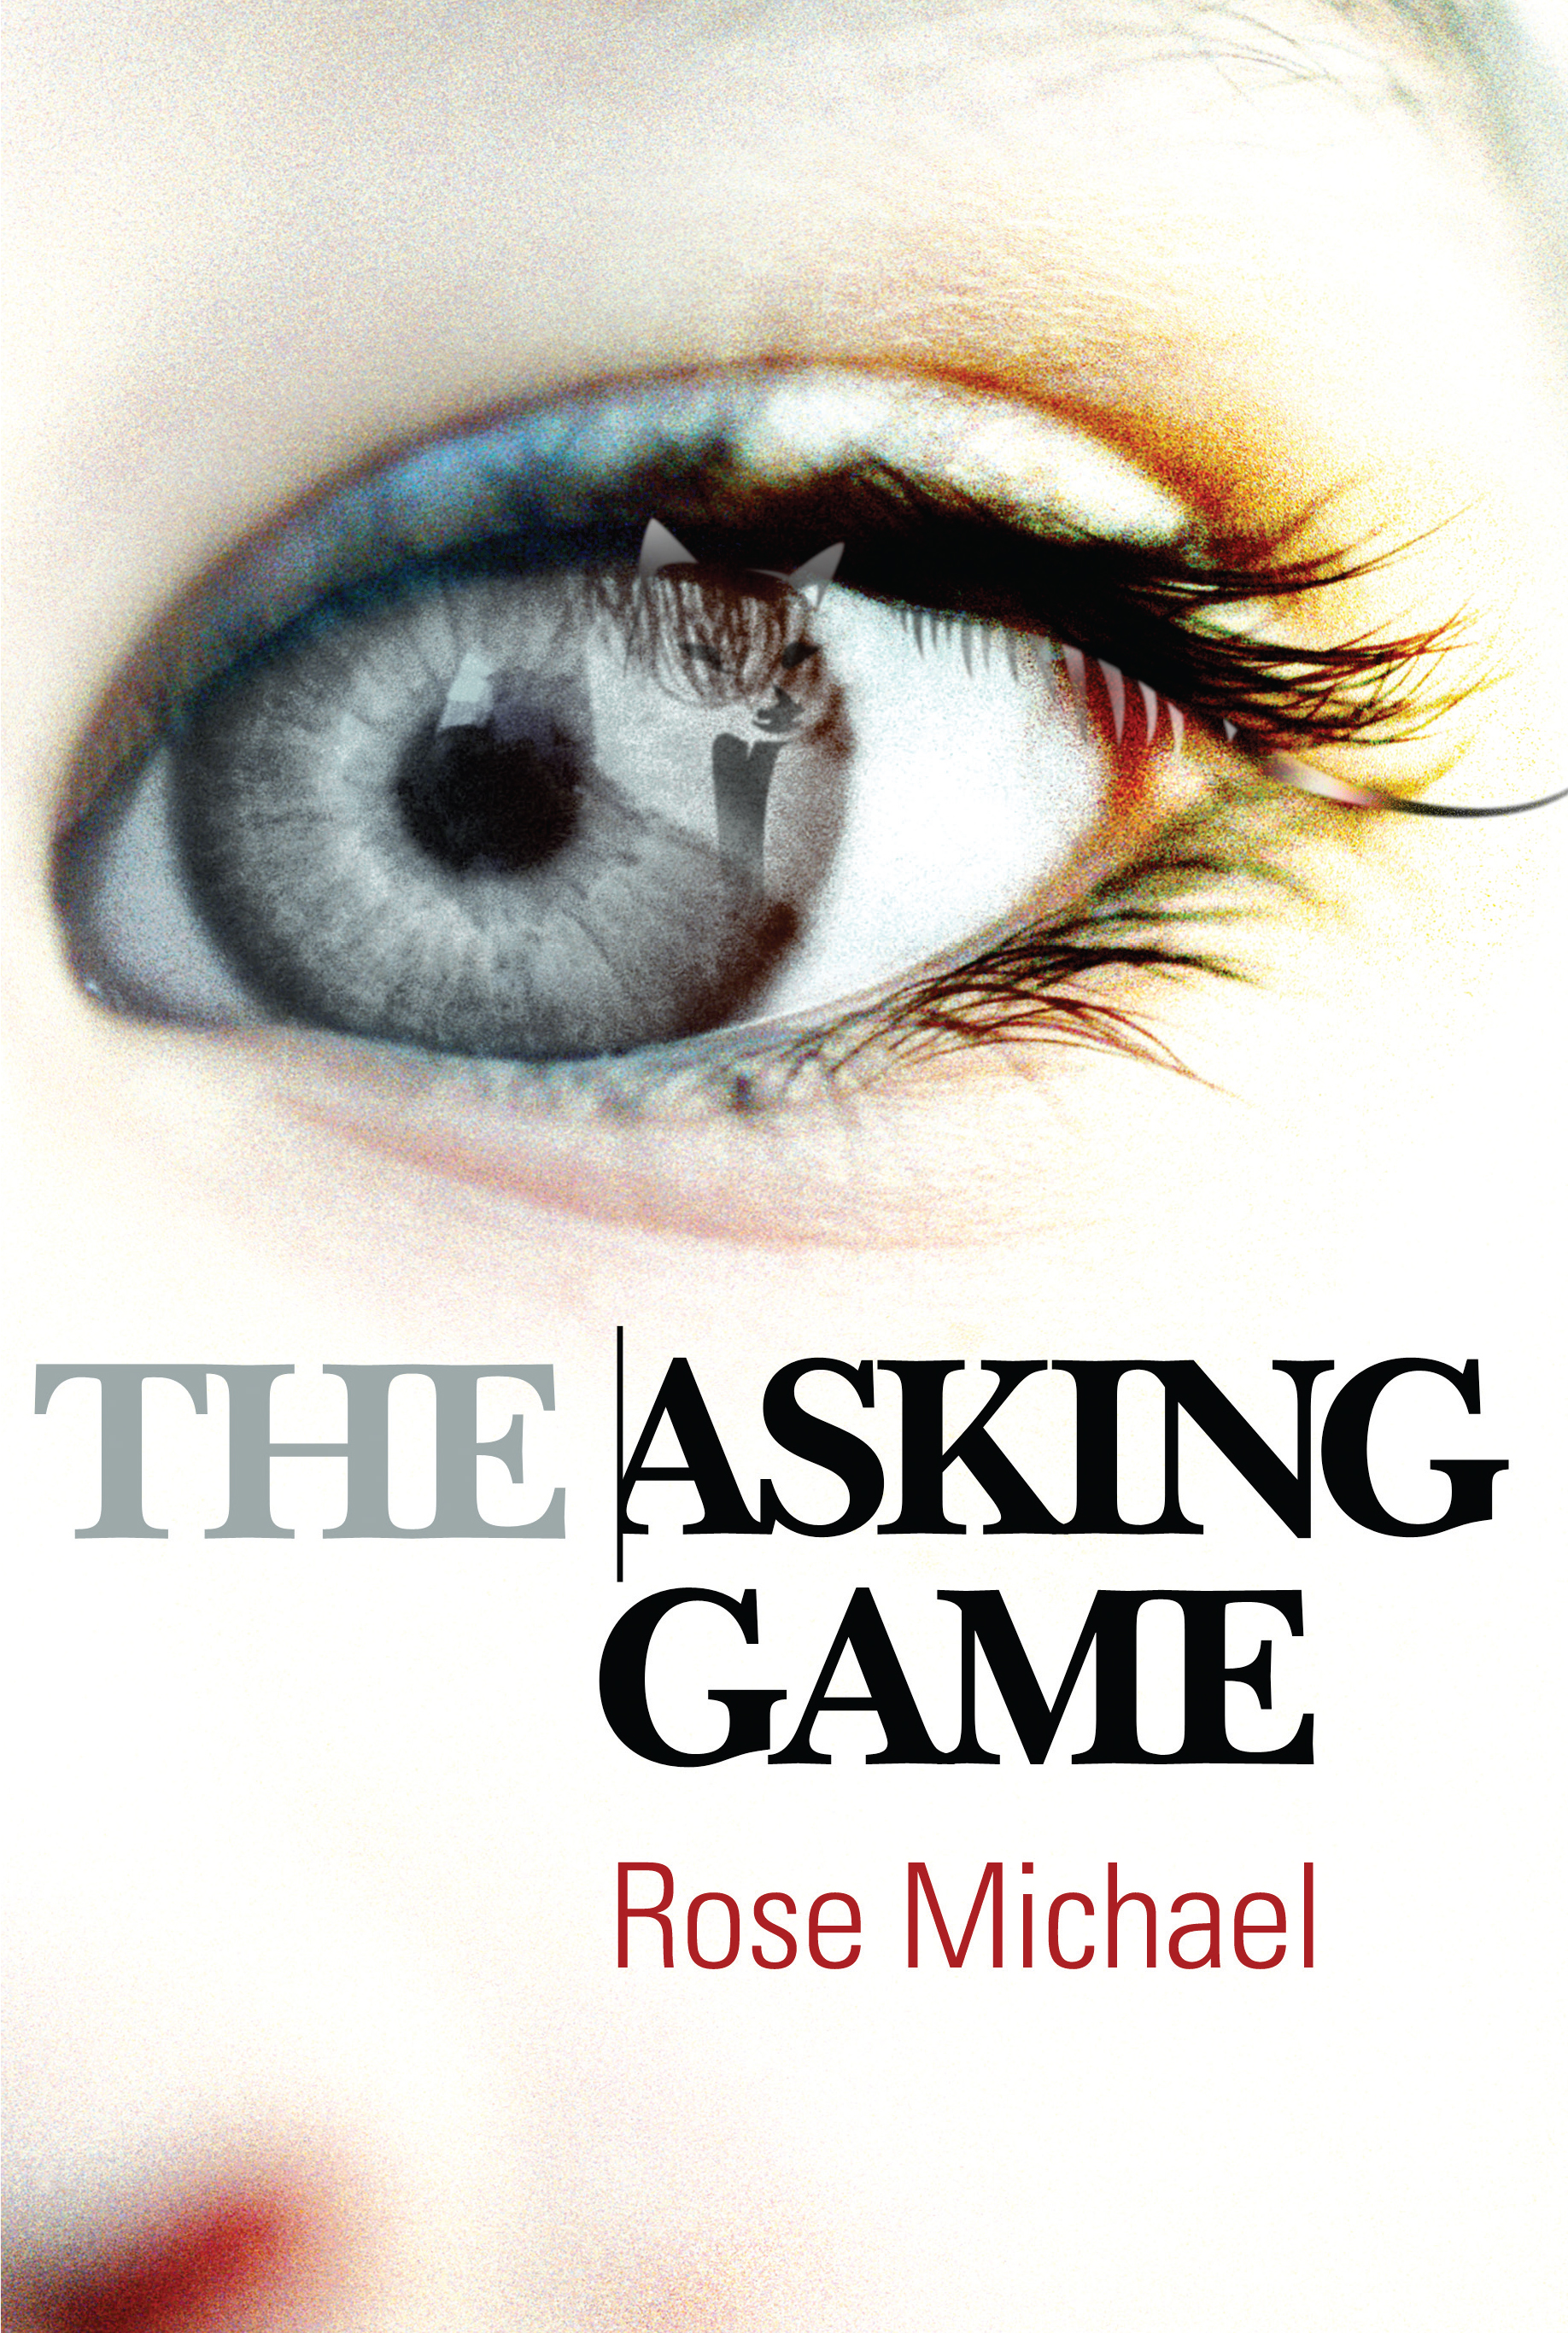 asking game cover